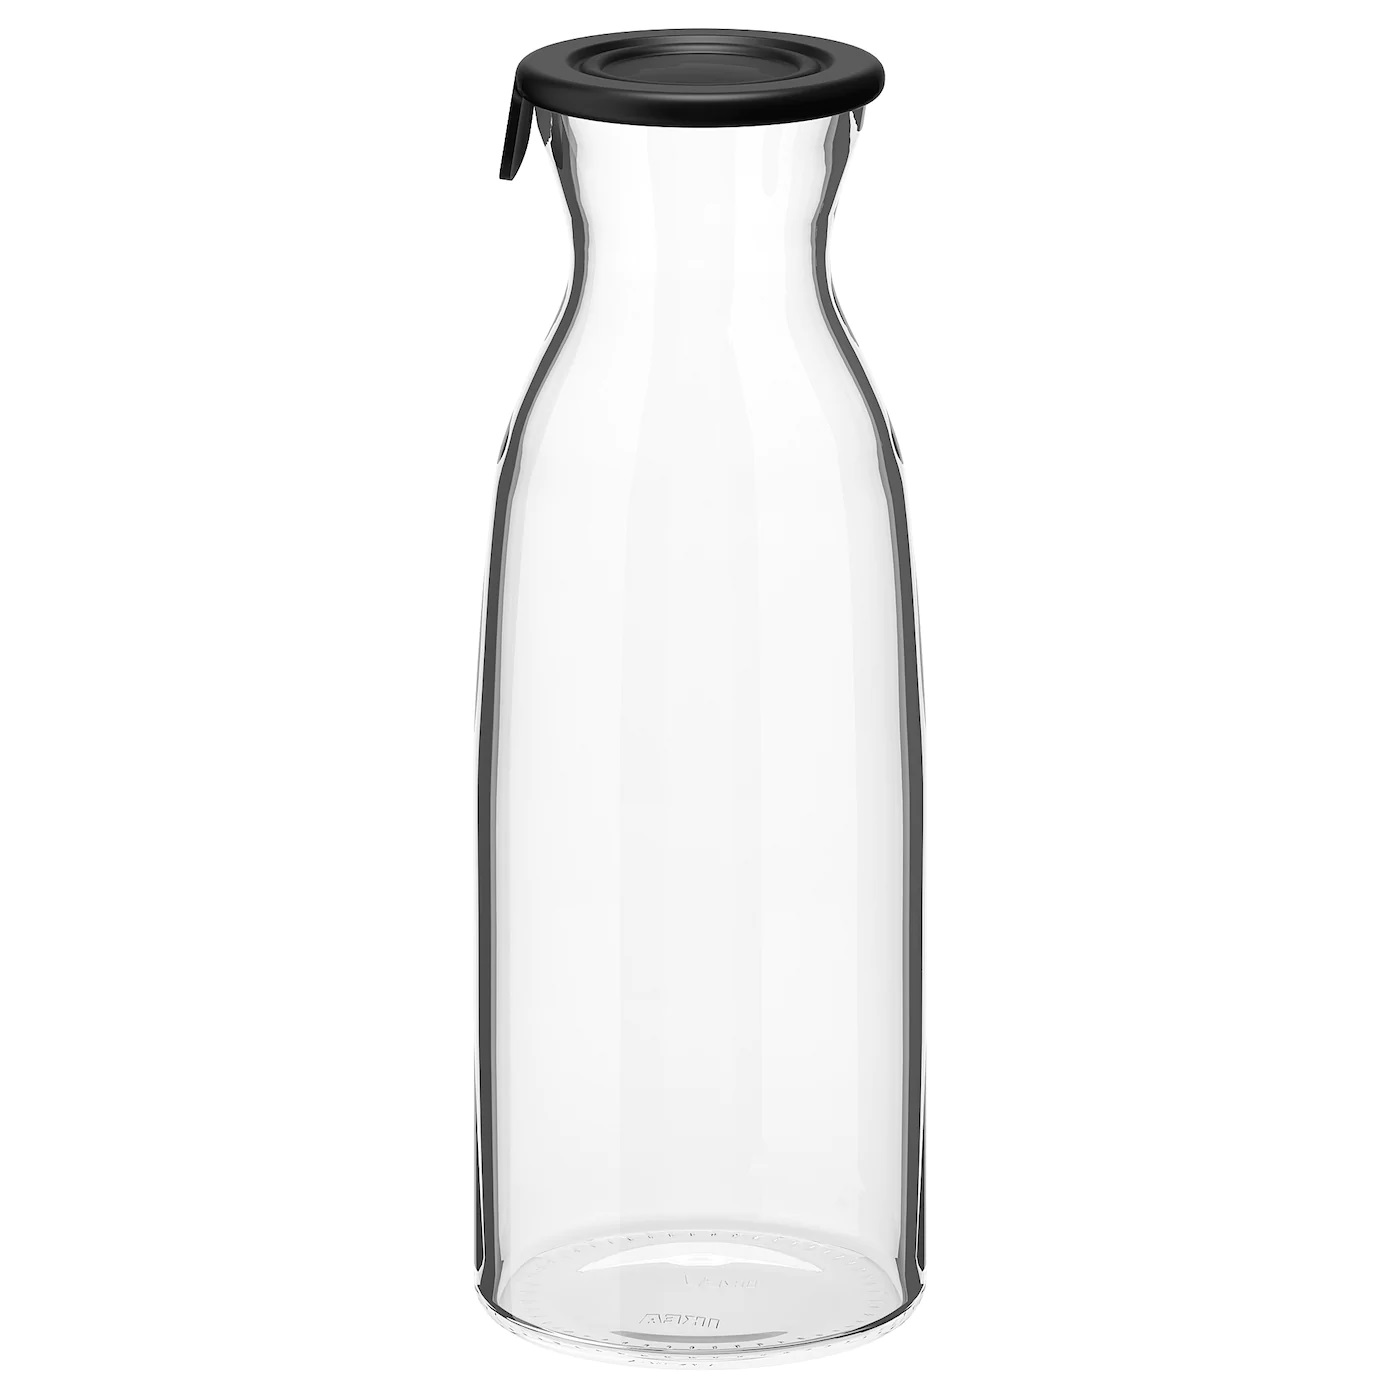 IKEA VARDAGEN Carafe with lid clear glass, 1.0 L - Used for Glass Bottle & Vase